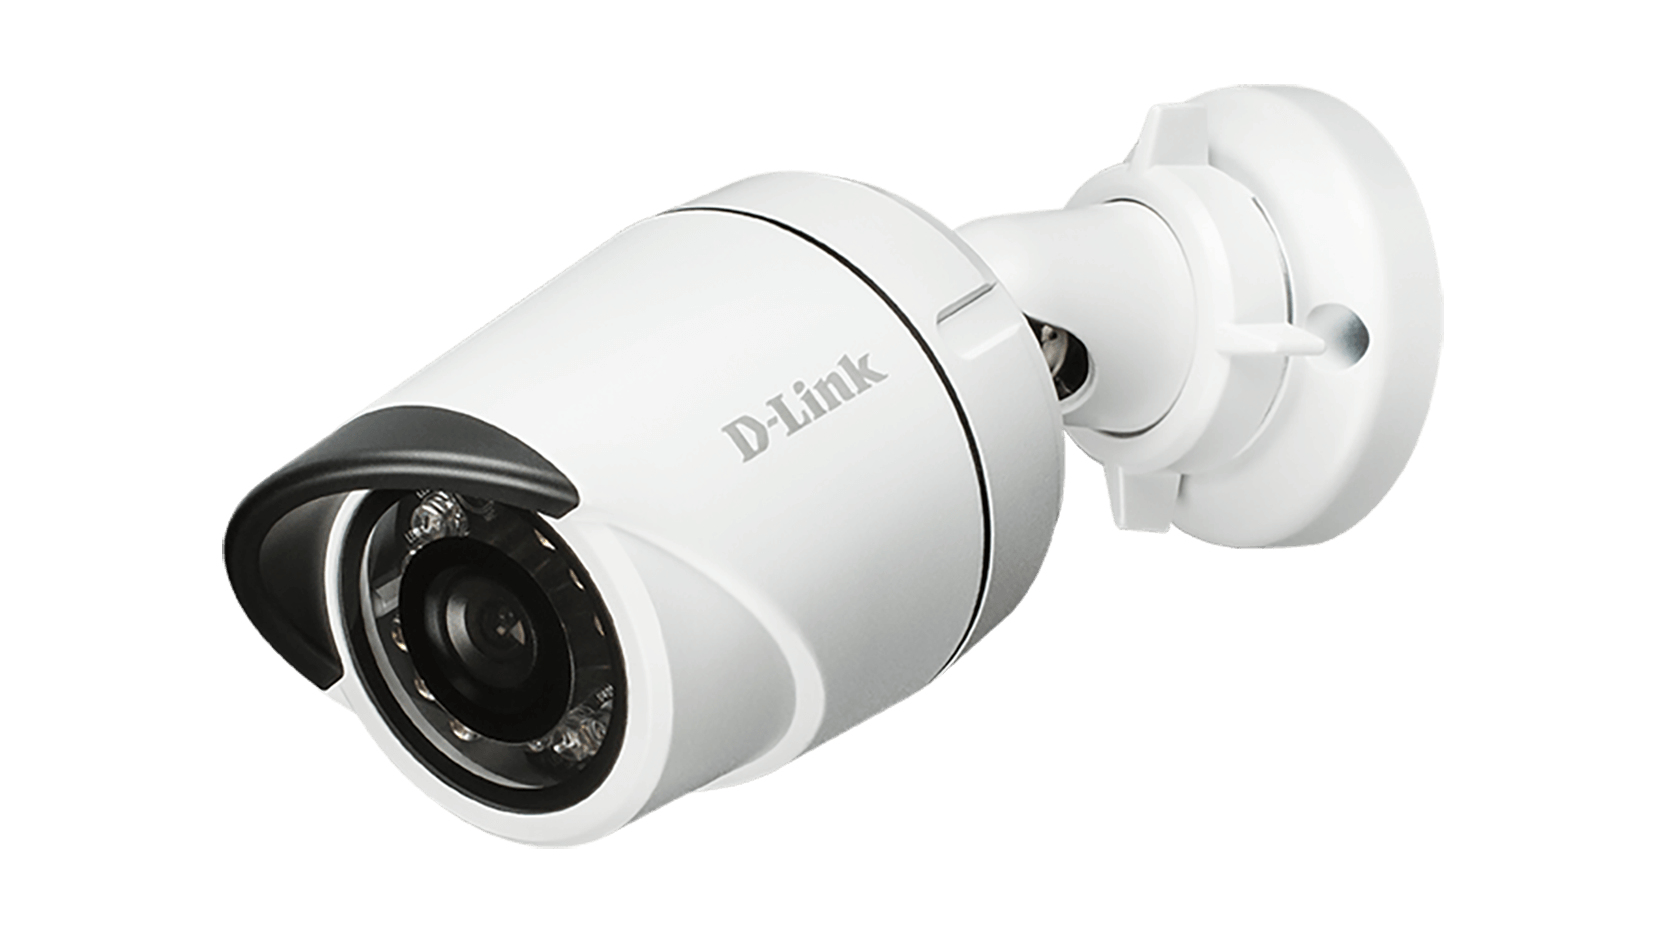 D-LINK DCS-4701E IP SECURITY CAMERA INDOOR & OUTDOOR BULLET WHITE 1280 X 720PIXELS